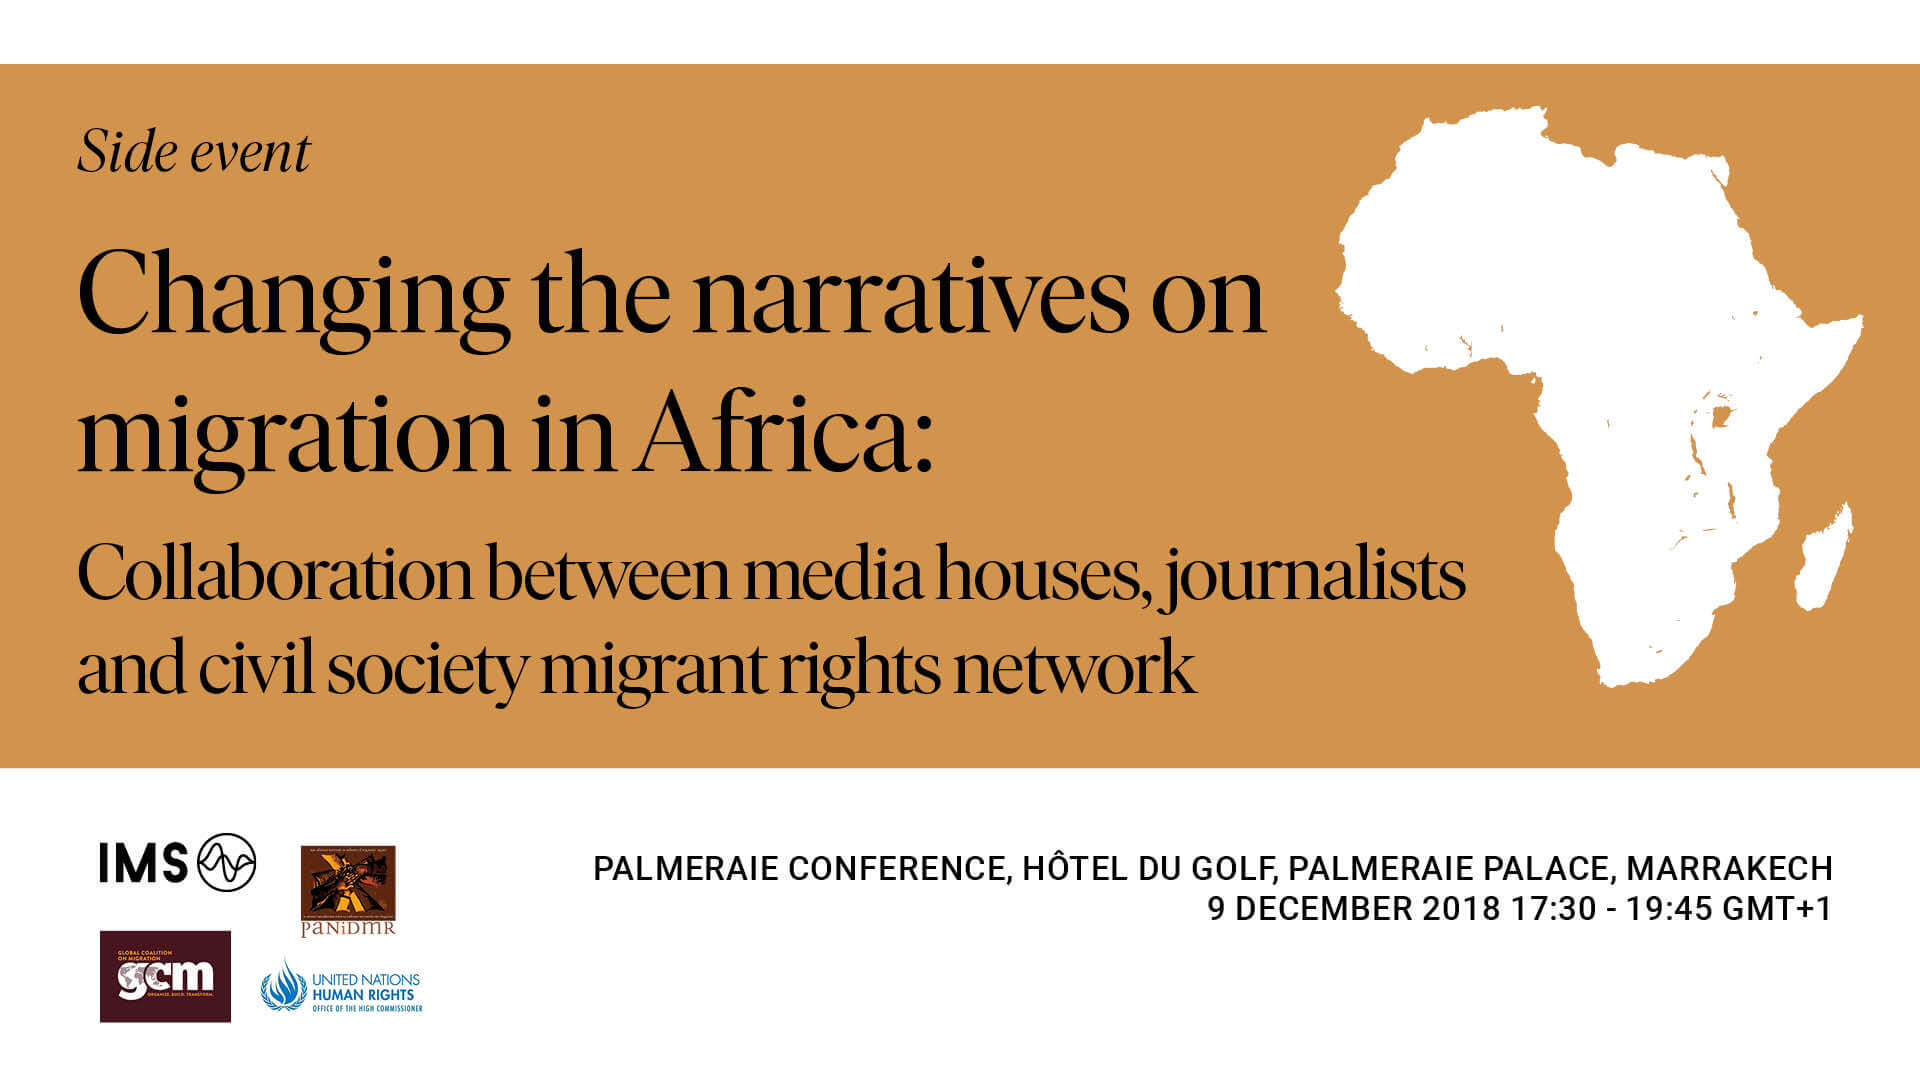 Changing media narratives on migration in Africa